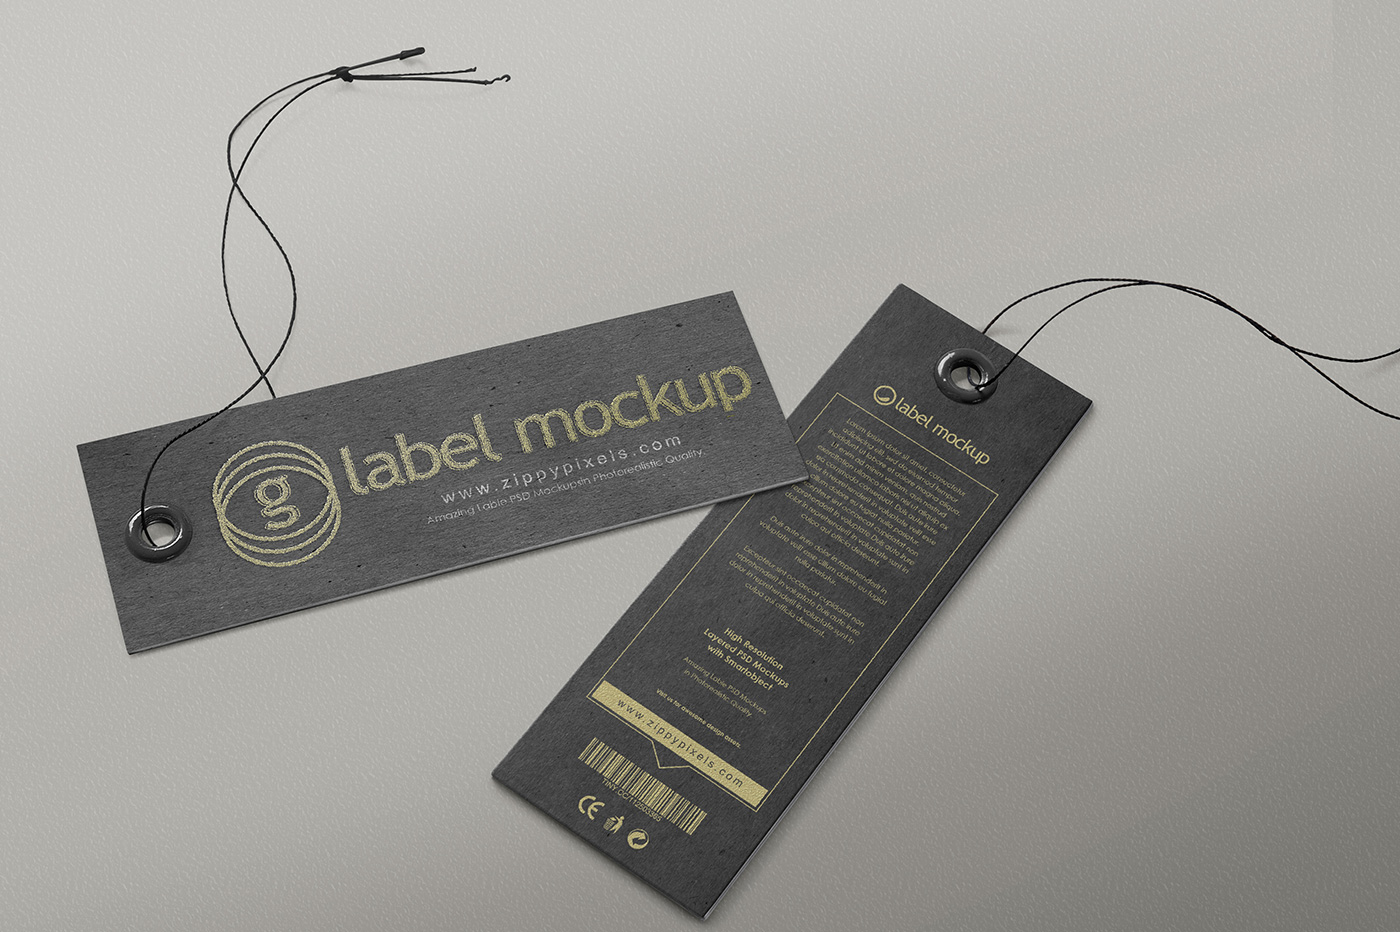 apparel label tag mockups vol 1 product mockups on creative market. Black Bedroom Furniture Sets. Home Design Ideas